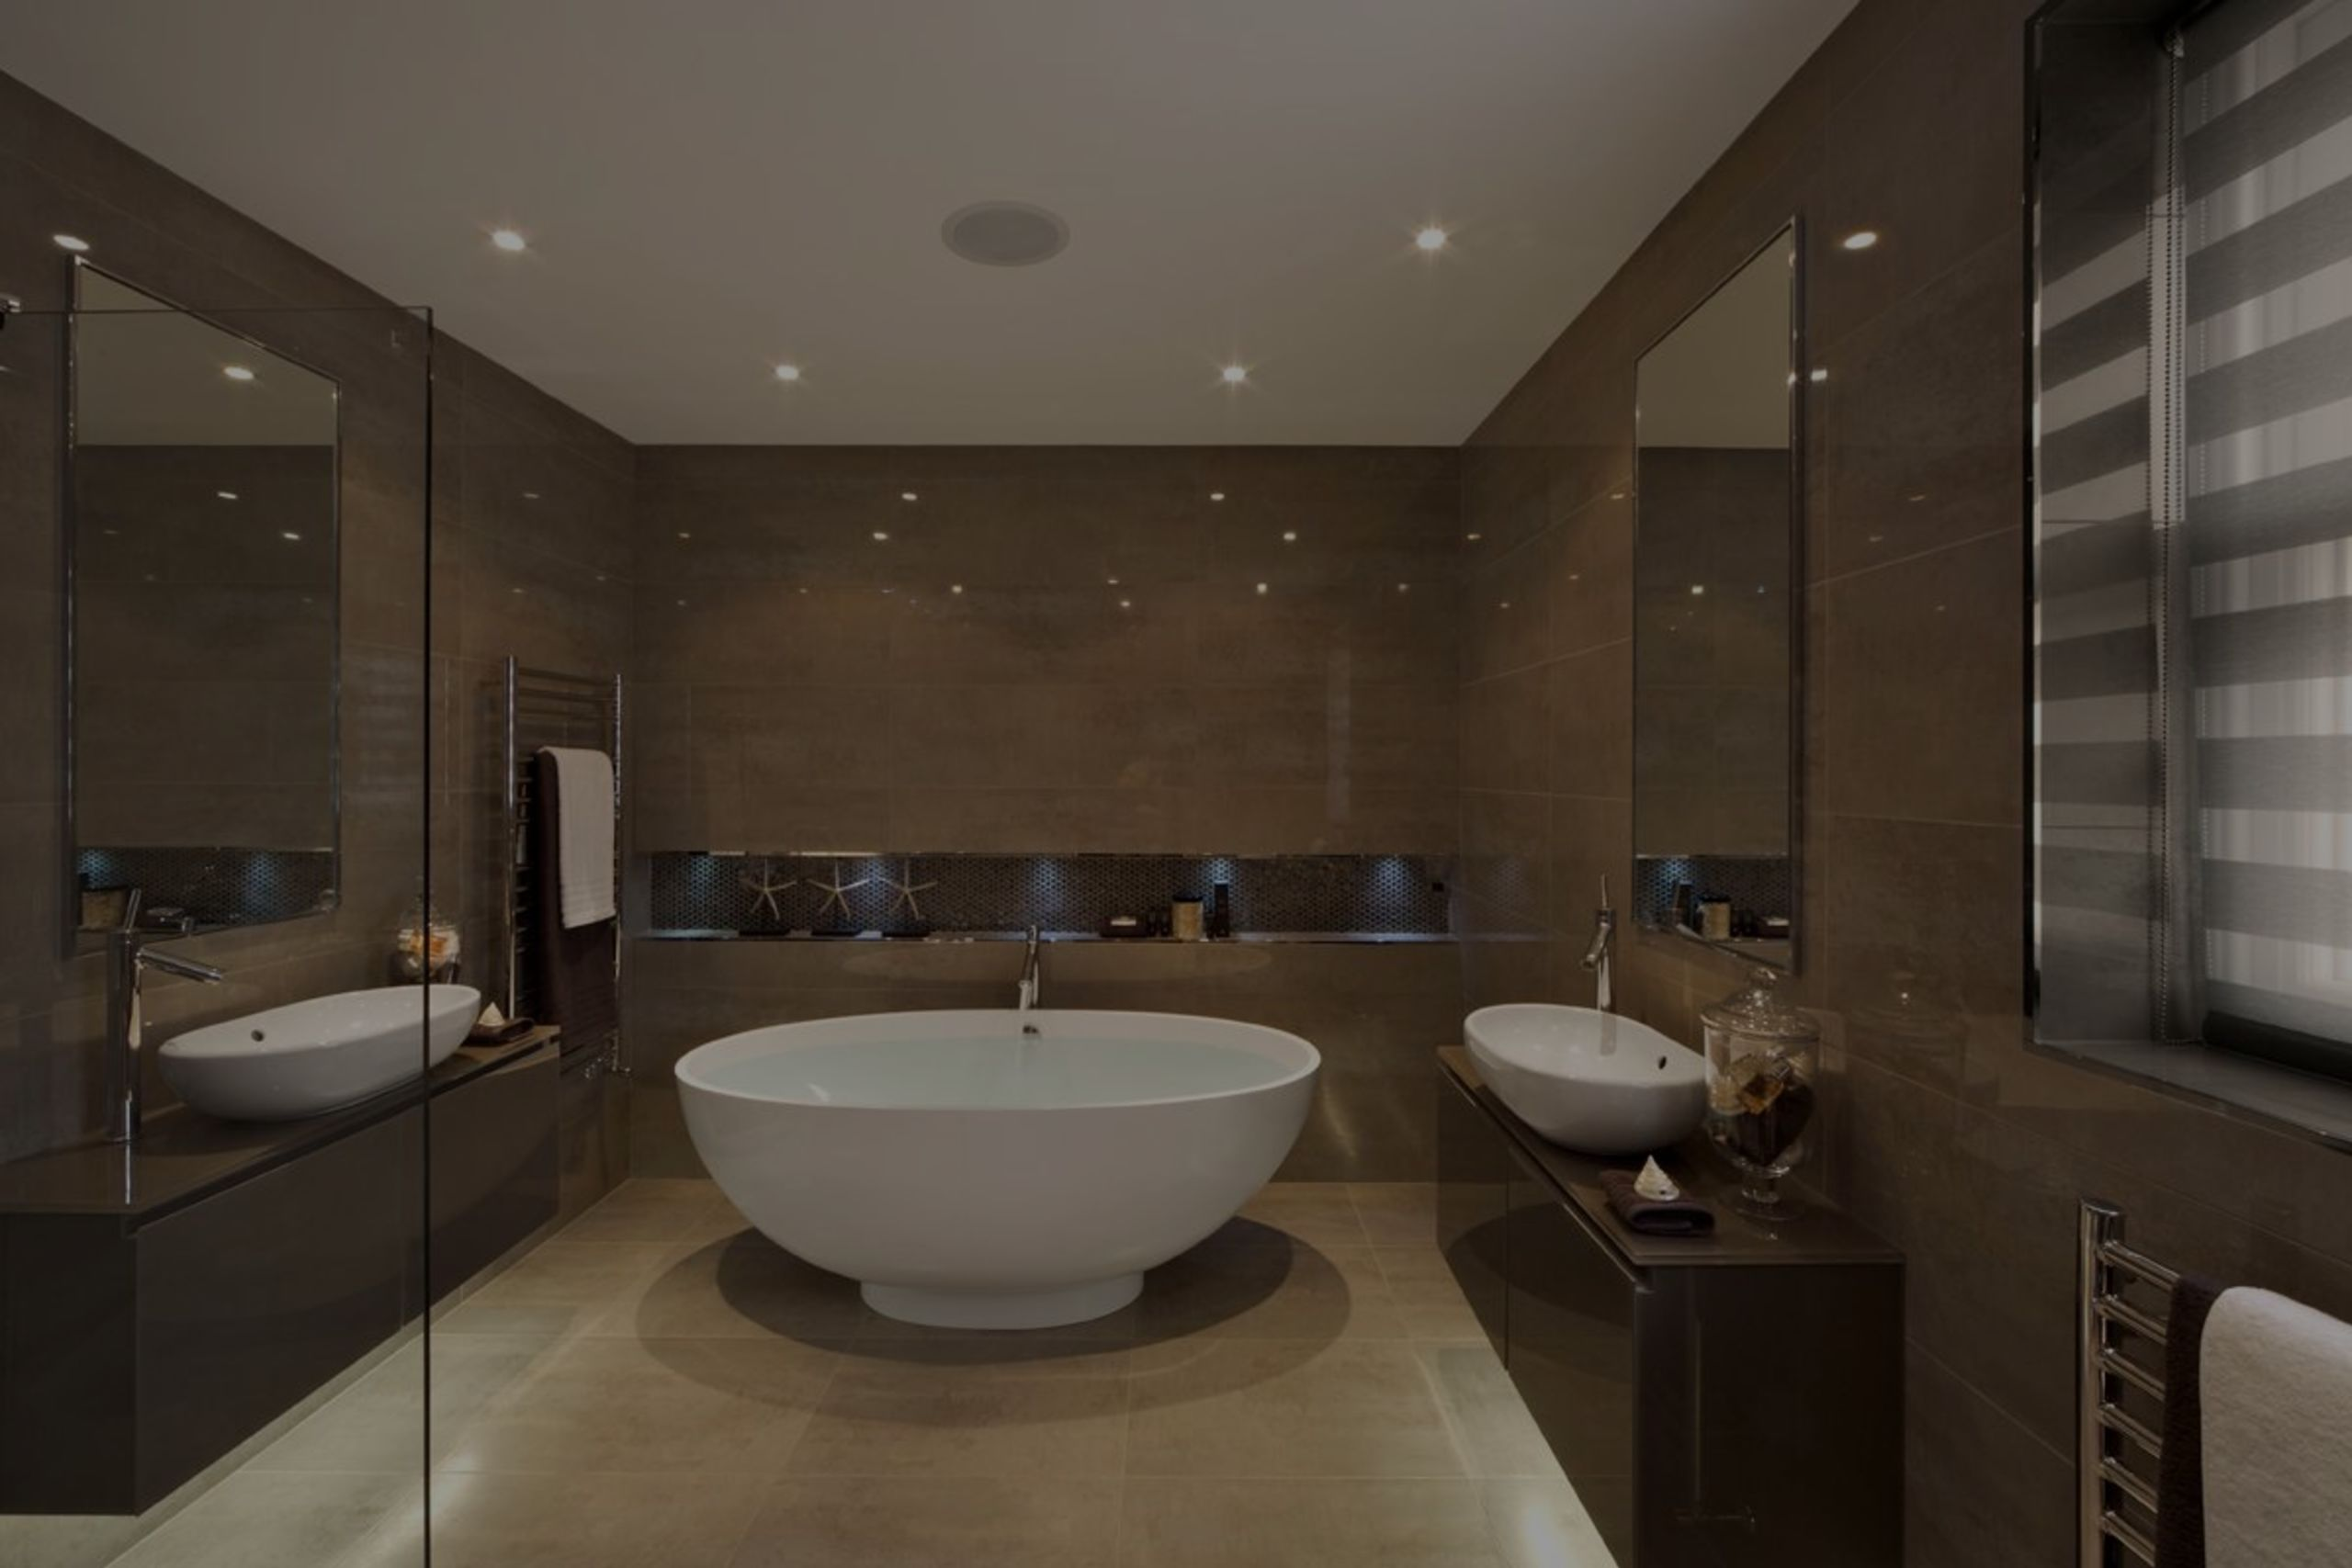 How to Get the Most from your Bathroom Renovation Budget